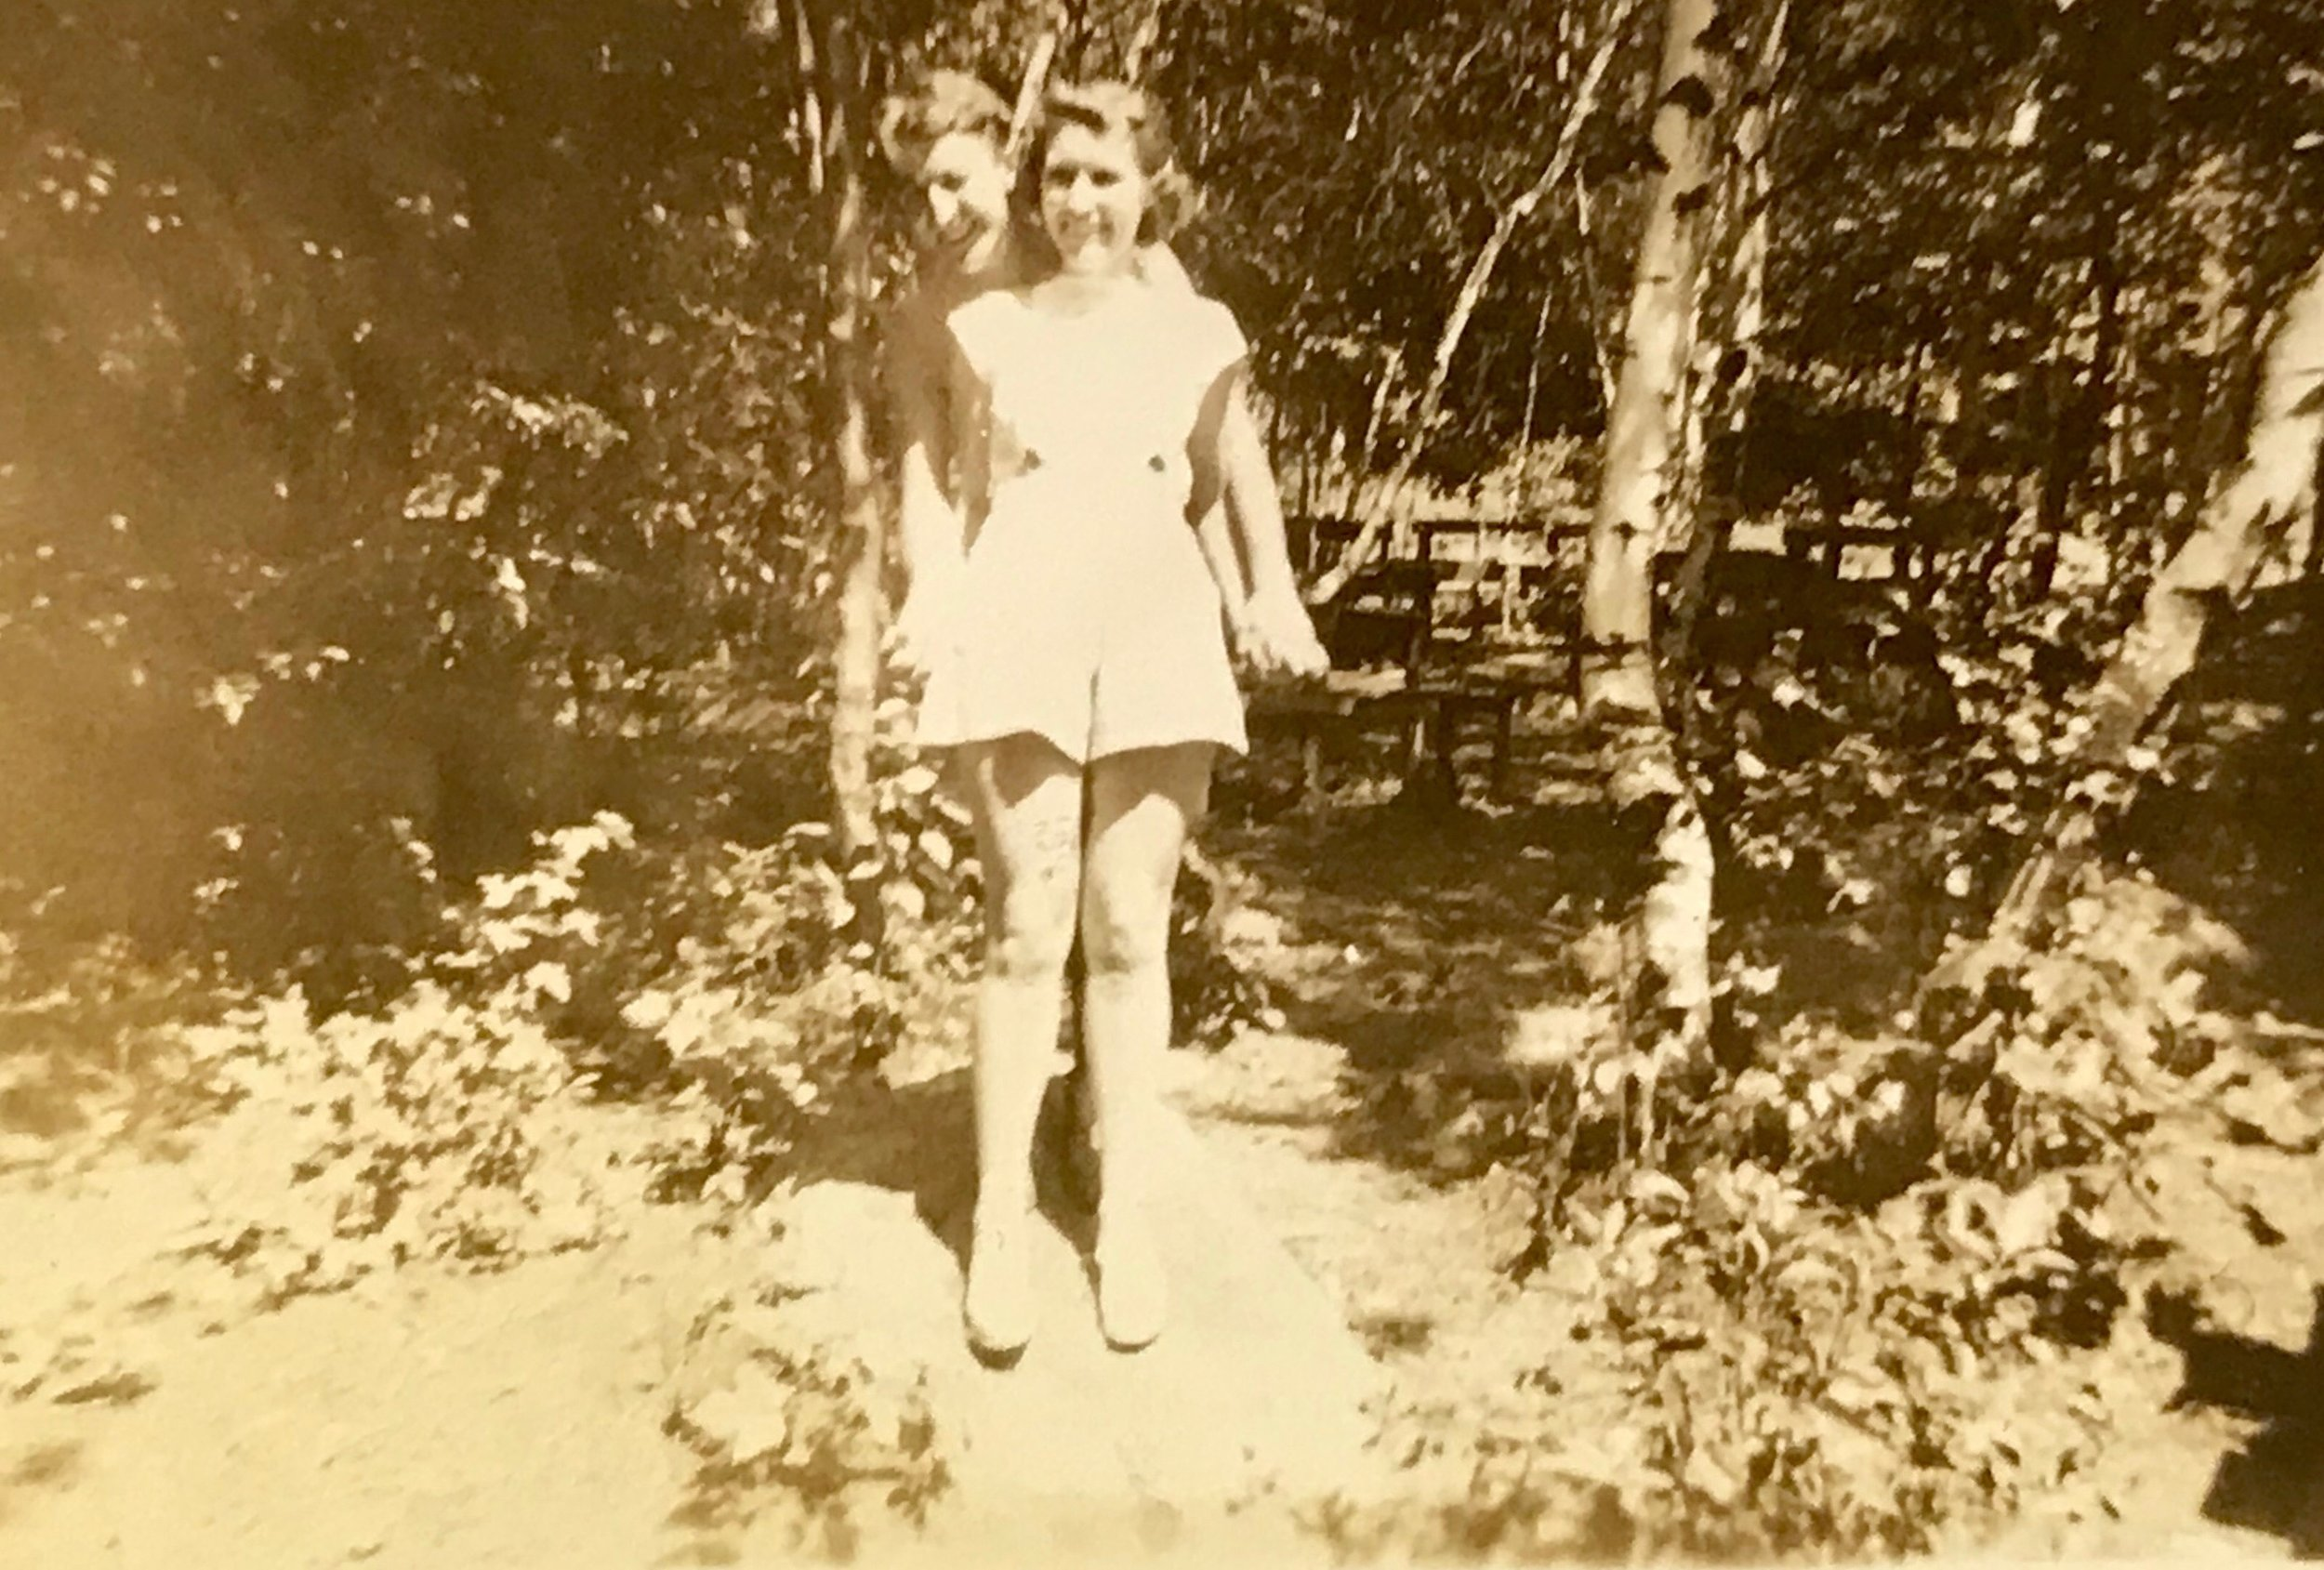 An undated picture of my grandparents from the late 1930s, I believe.